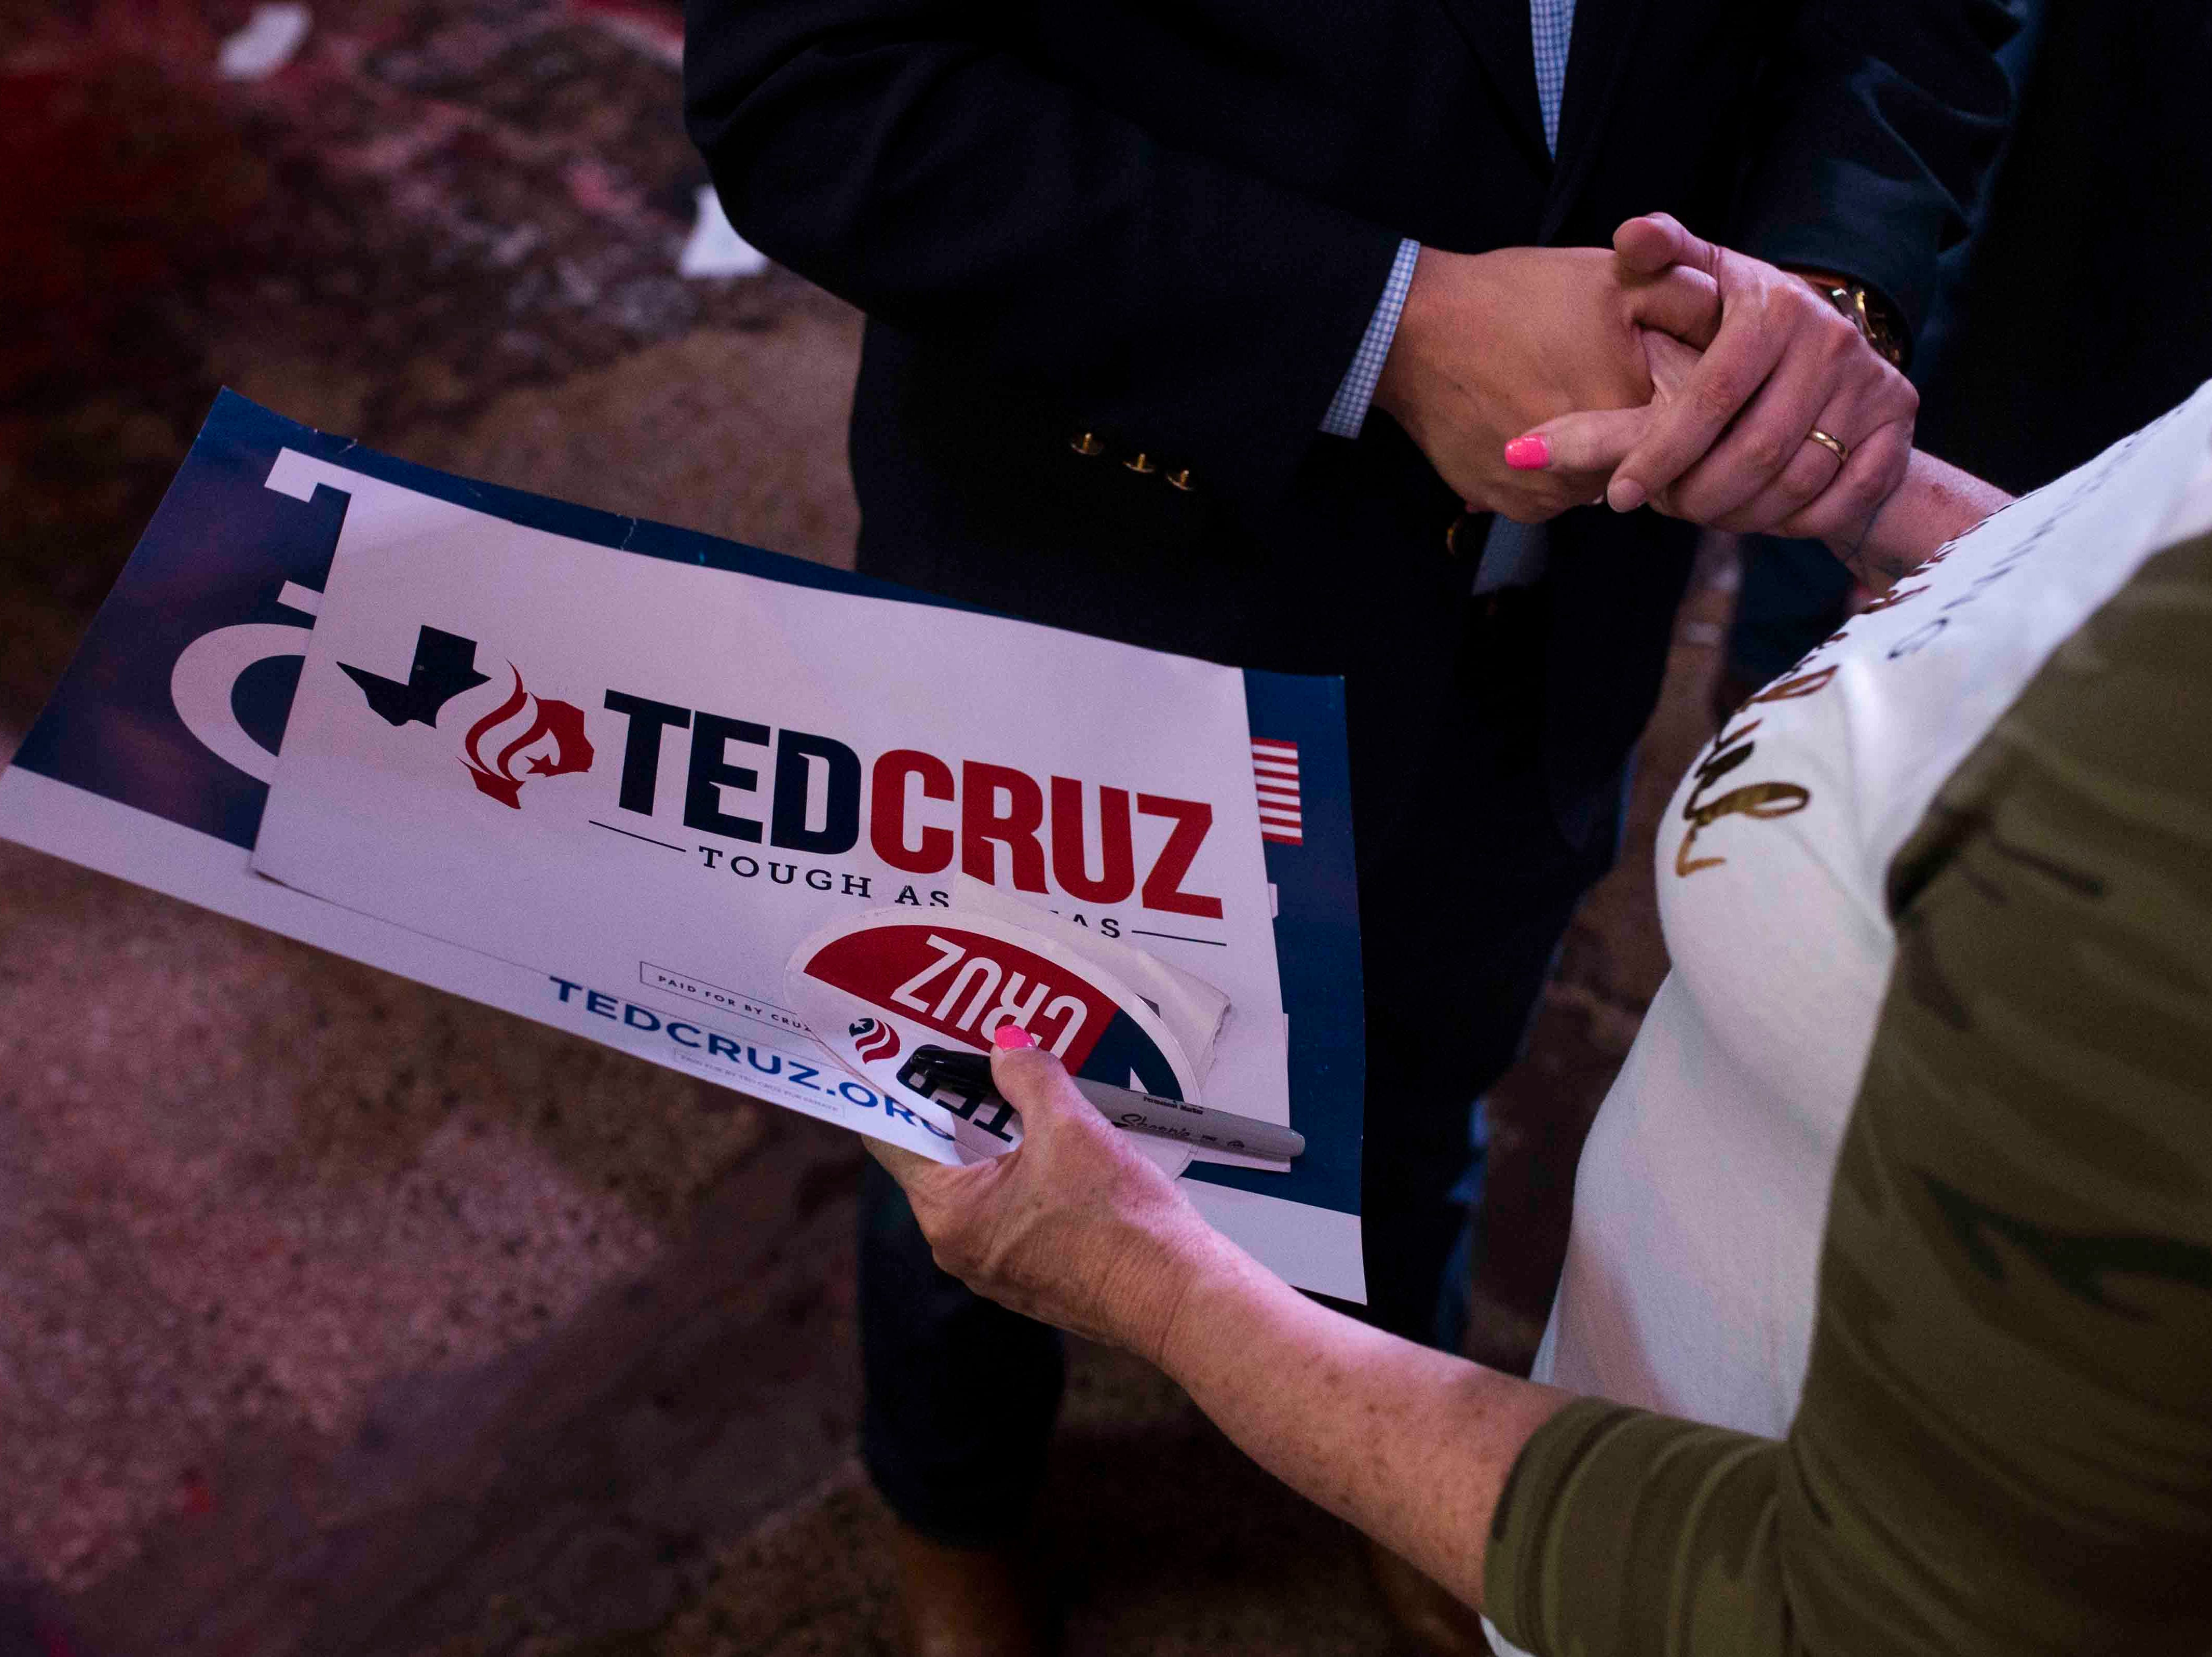 U.S. Sen. Ted Cruz embraces a supporter during a campaign event on Saturday, August 16, 2018, at House of Rock in Corpus Christi.